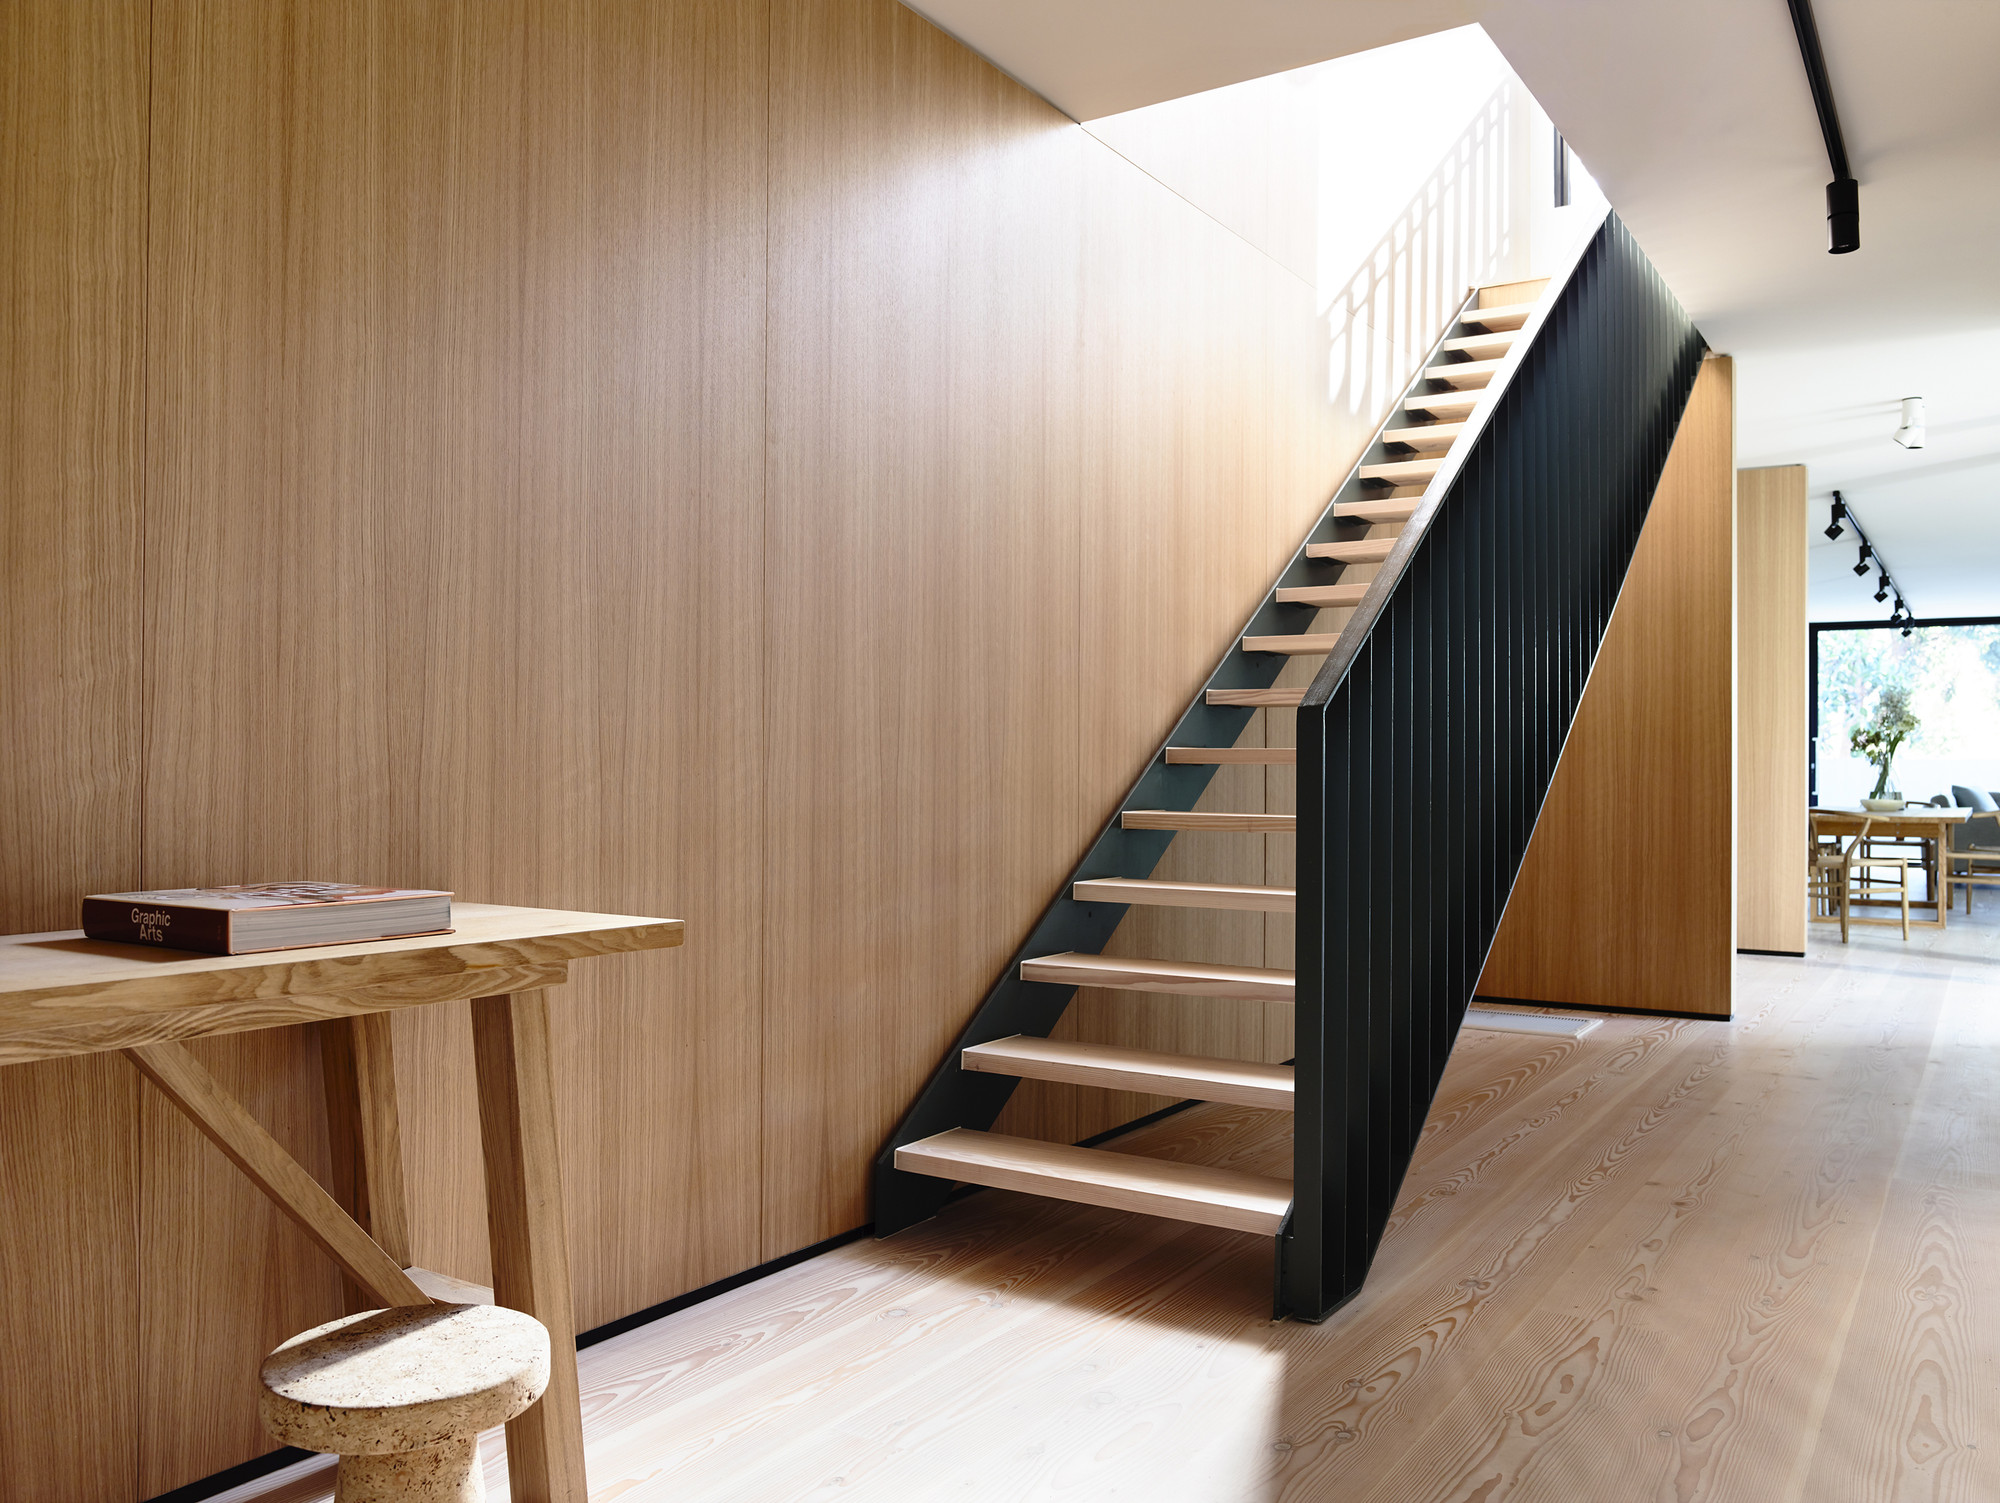 Gallery of fairbairn house inglis architects 2 - Casas con escaleras interiores ...